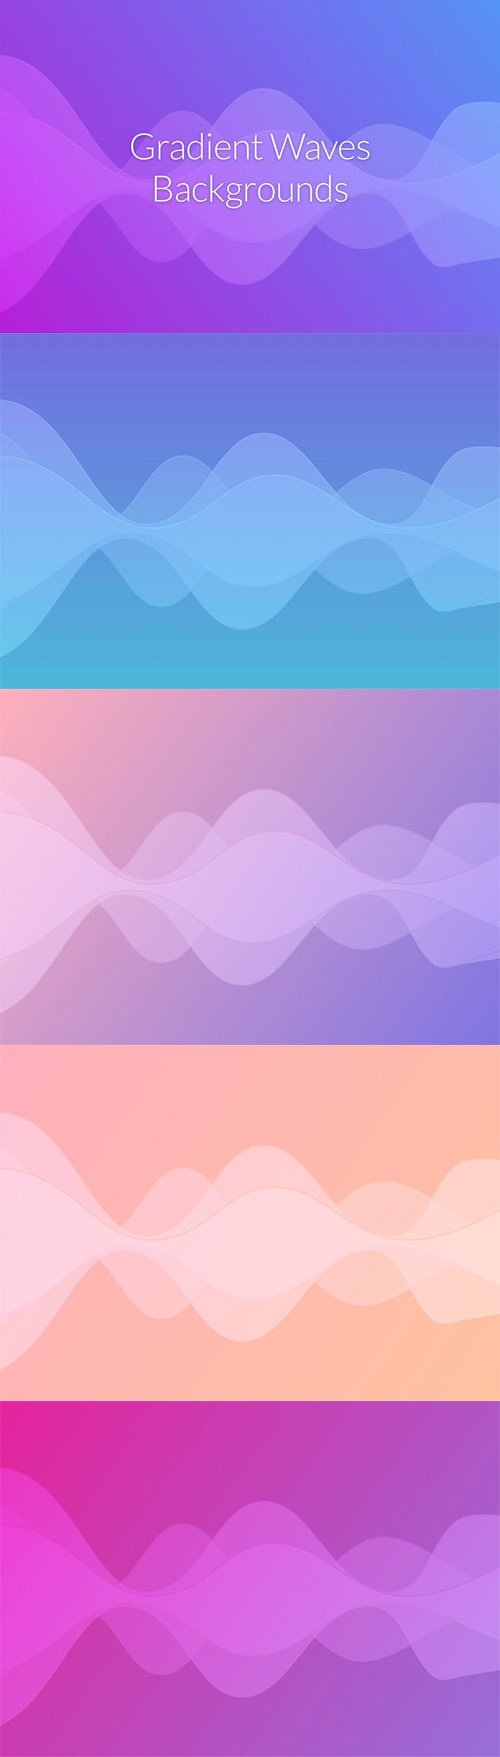 Gradient Waves Backgrounds